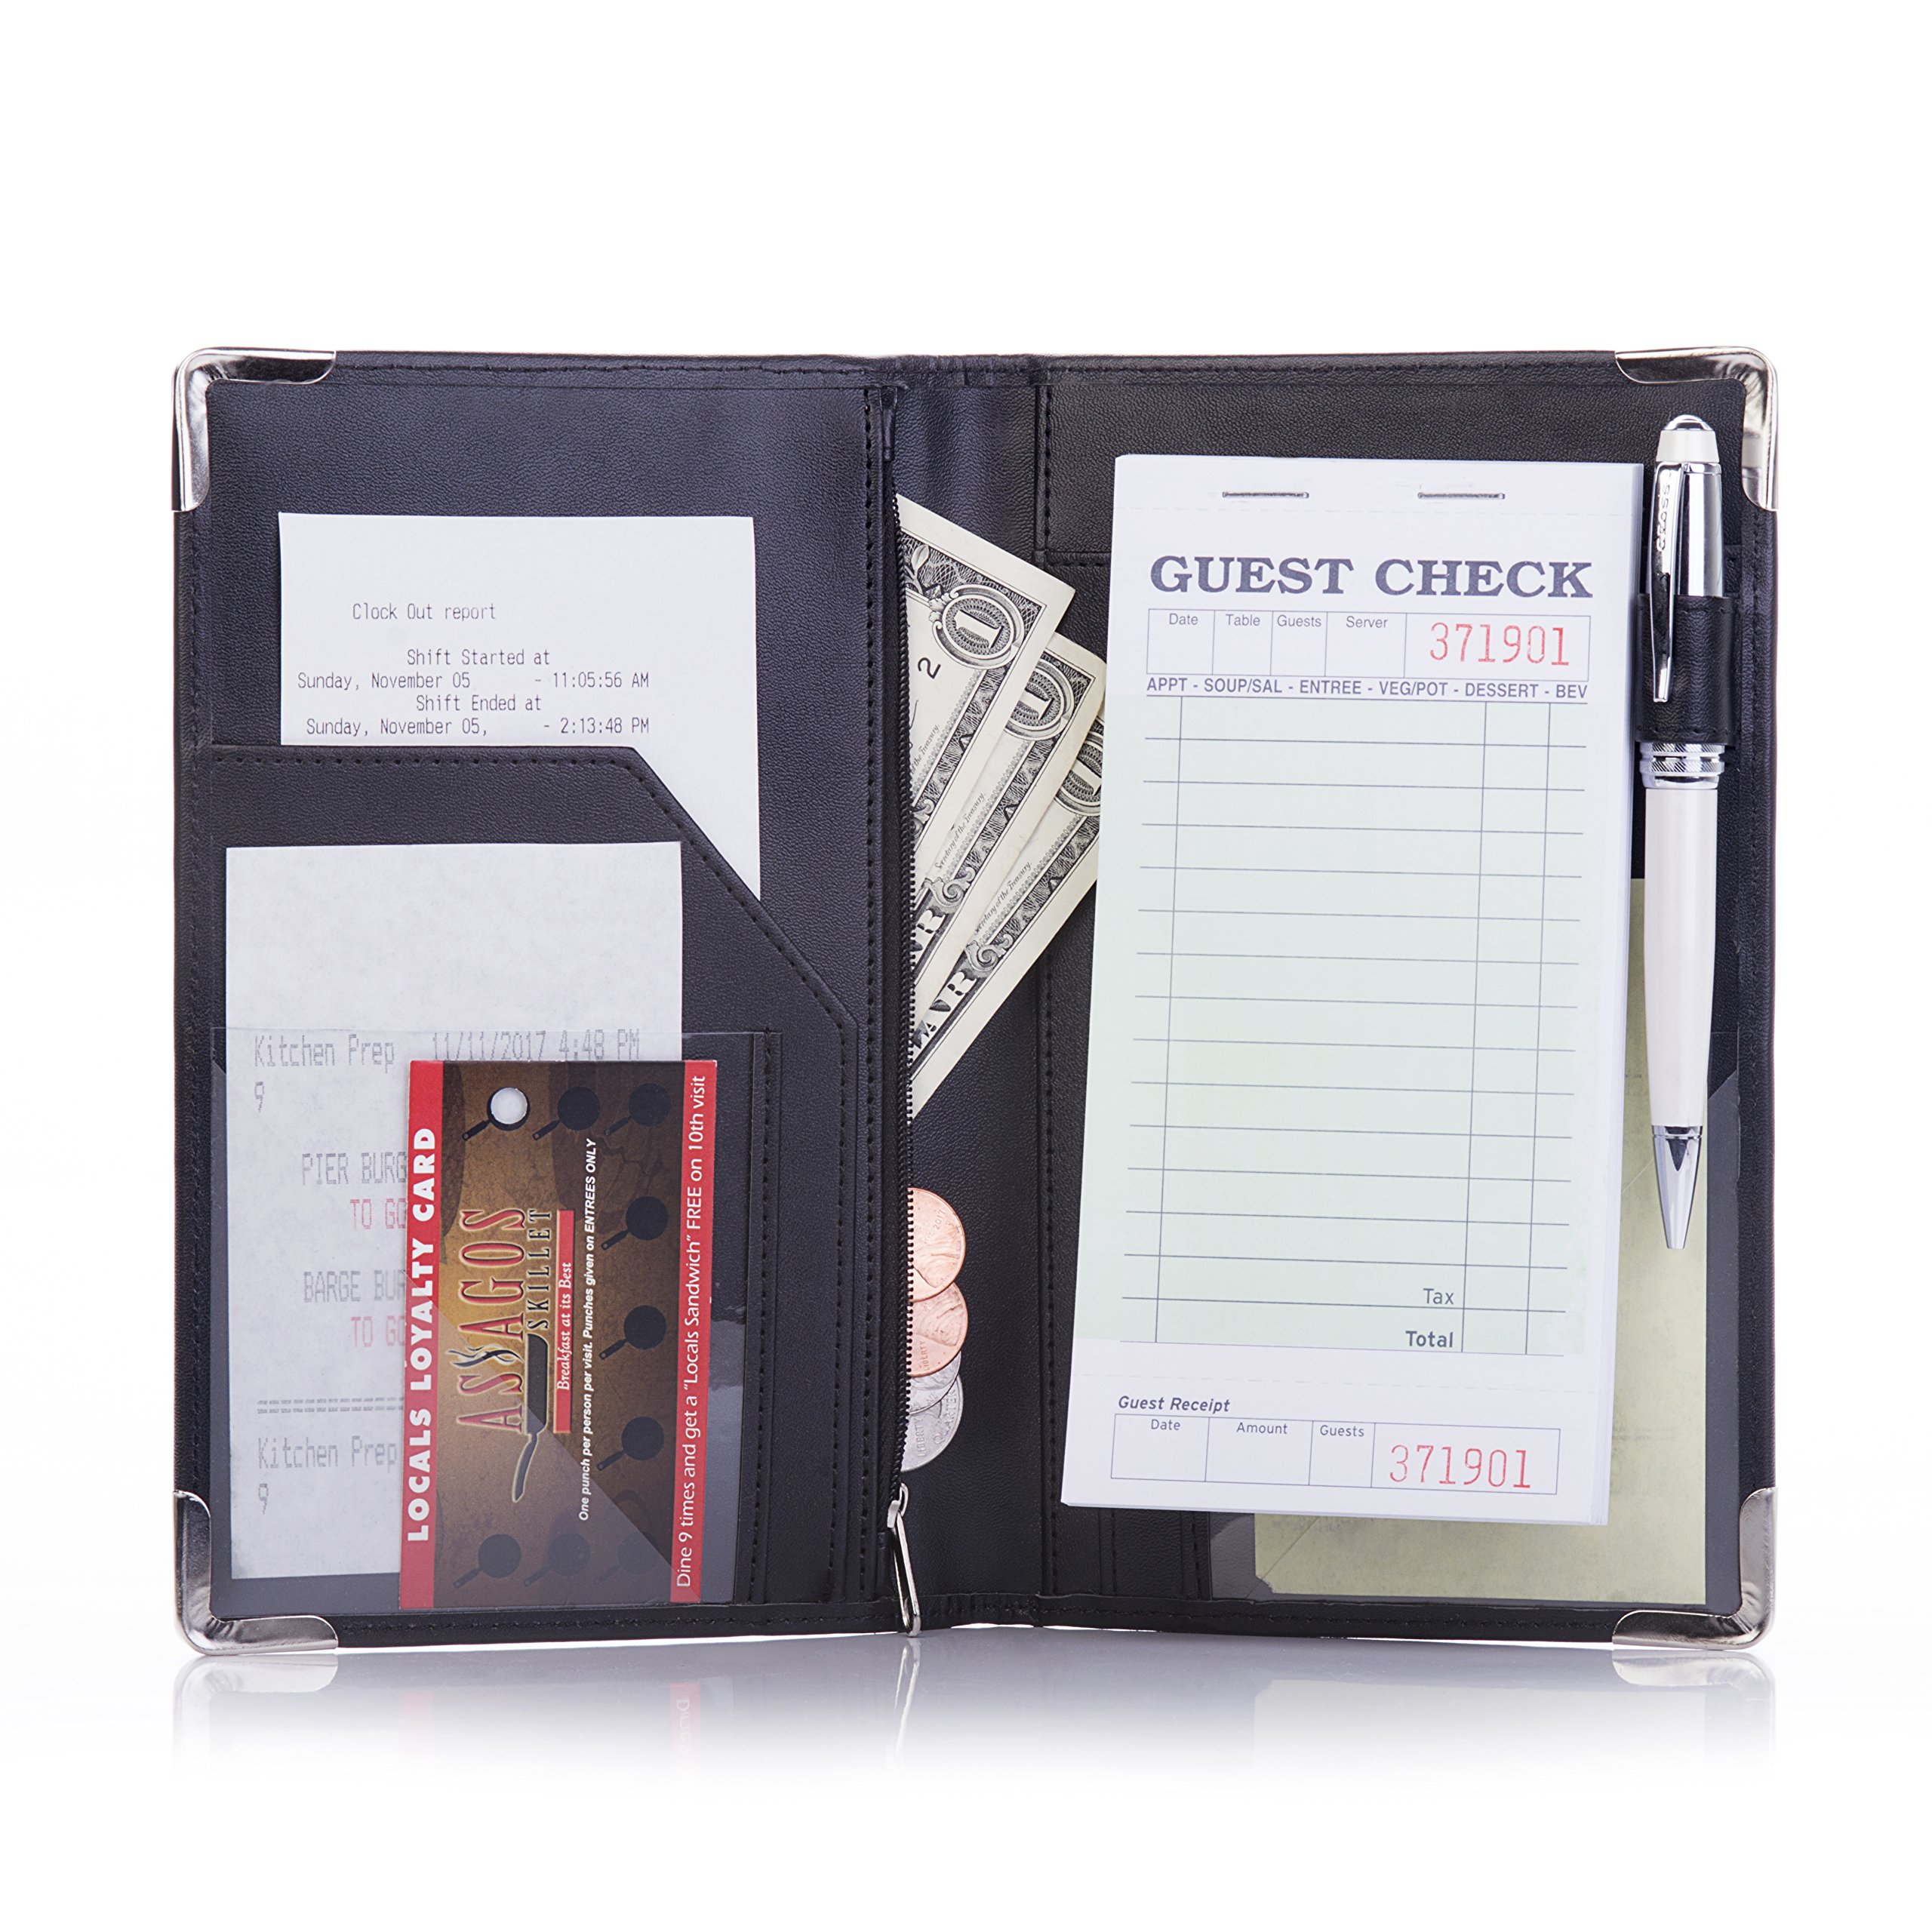 Deluxe Server Book Organizer for Restaurant Waiter Waitress Waitstaff | Comfortably Fits in Apron | 9 Pockets includes Zipper Pouch with Pen Holder | Holds Guest Checks, Money, Order Pad by Sonic Server (Image #1)